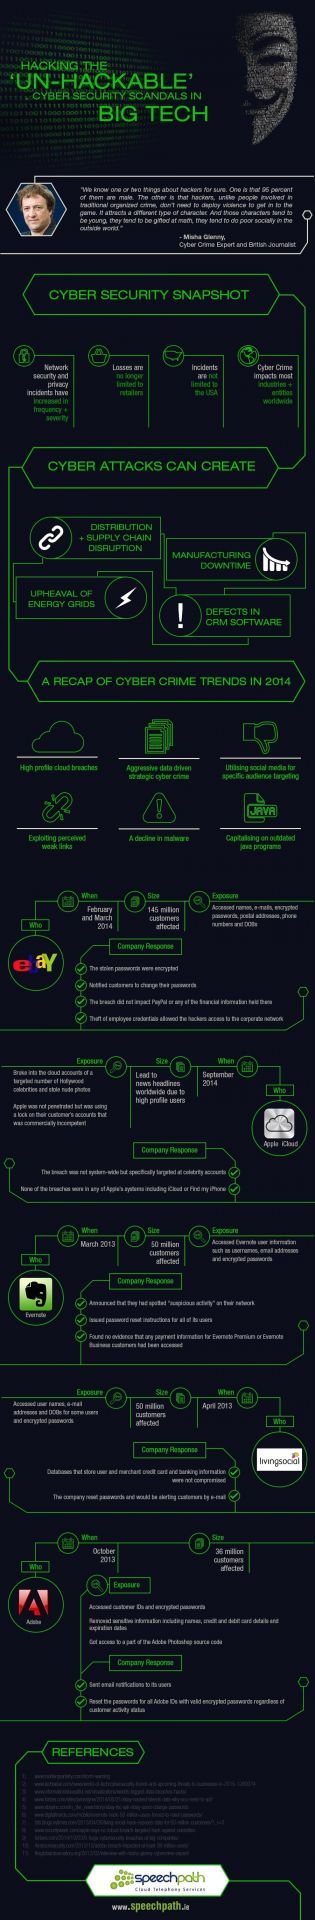 Cyber-Security-Scandals-in-Big-Technology-Infographic